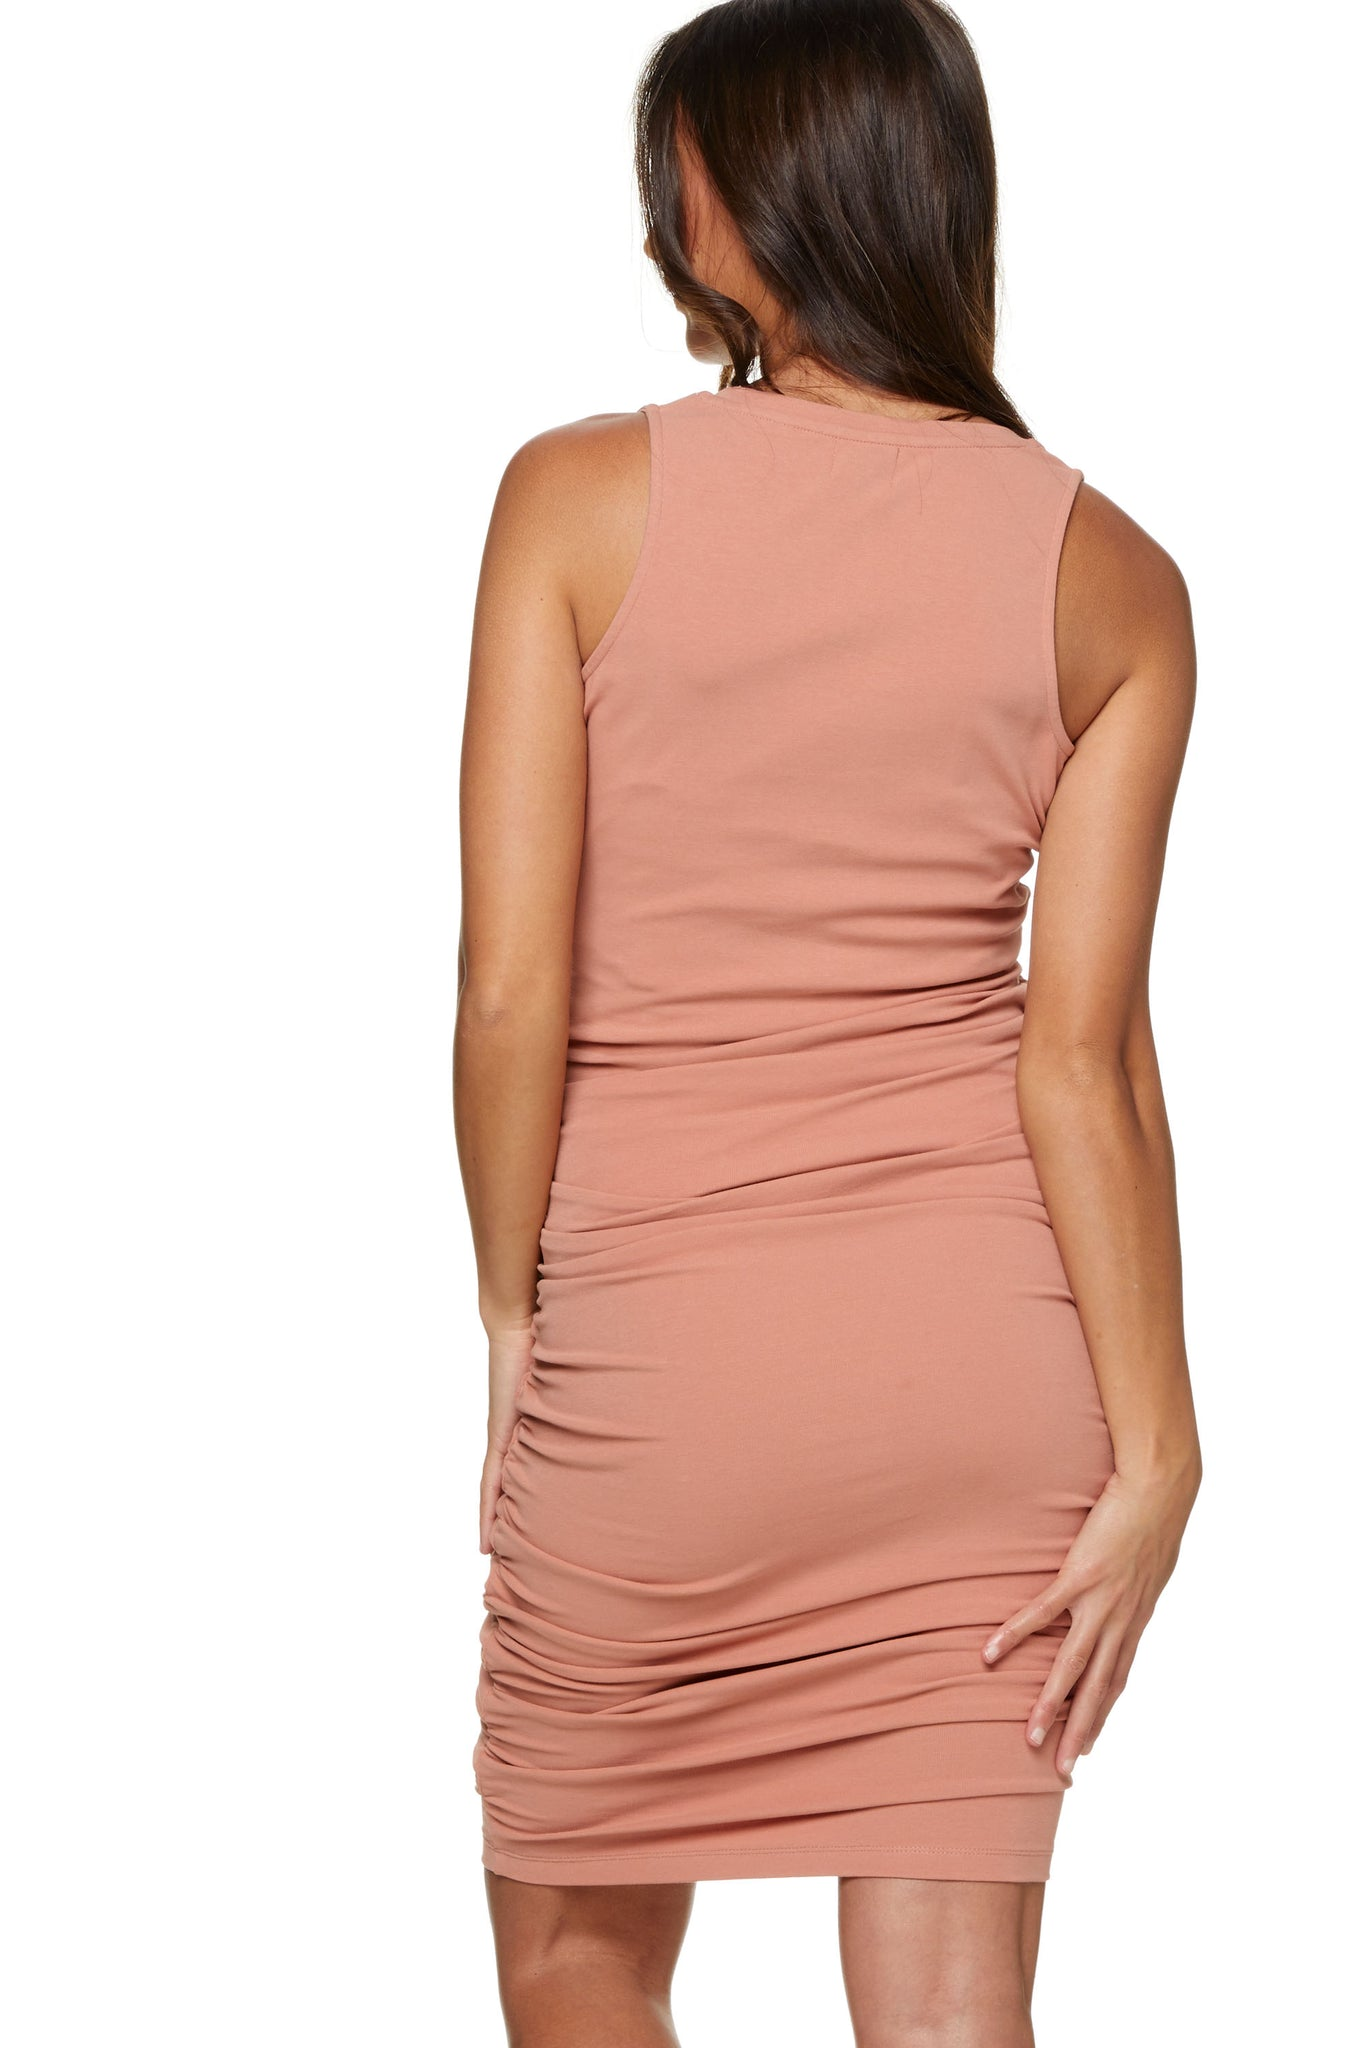 Bodycon Maternity Dress Pink Image 3